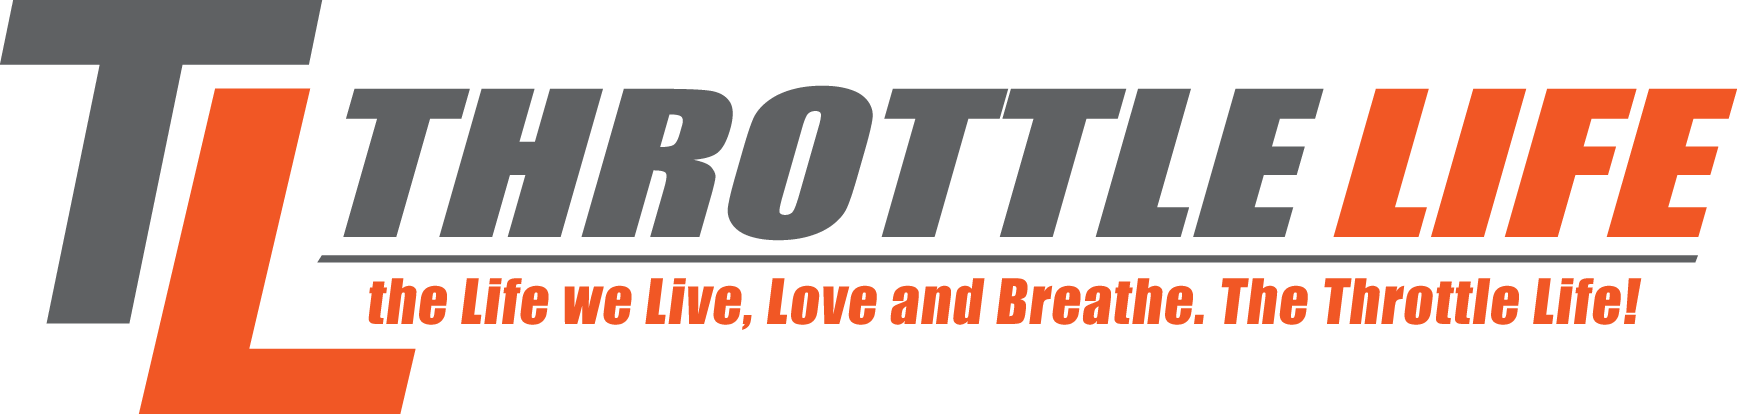 Throttle Life logo